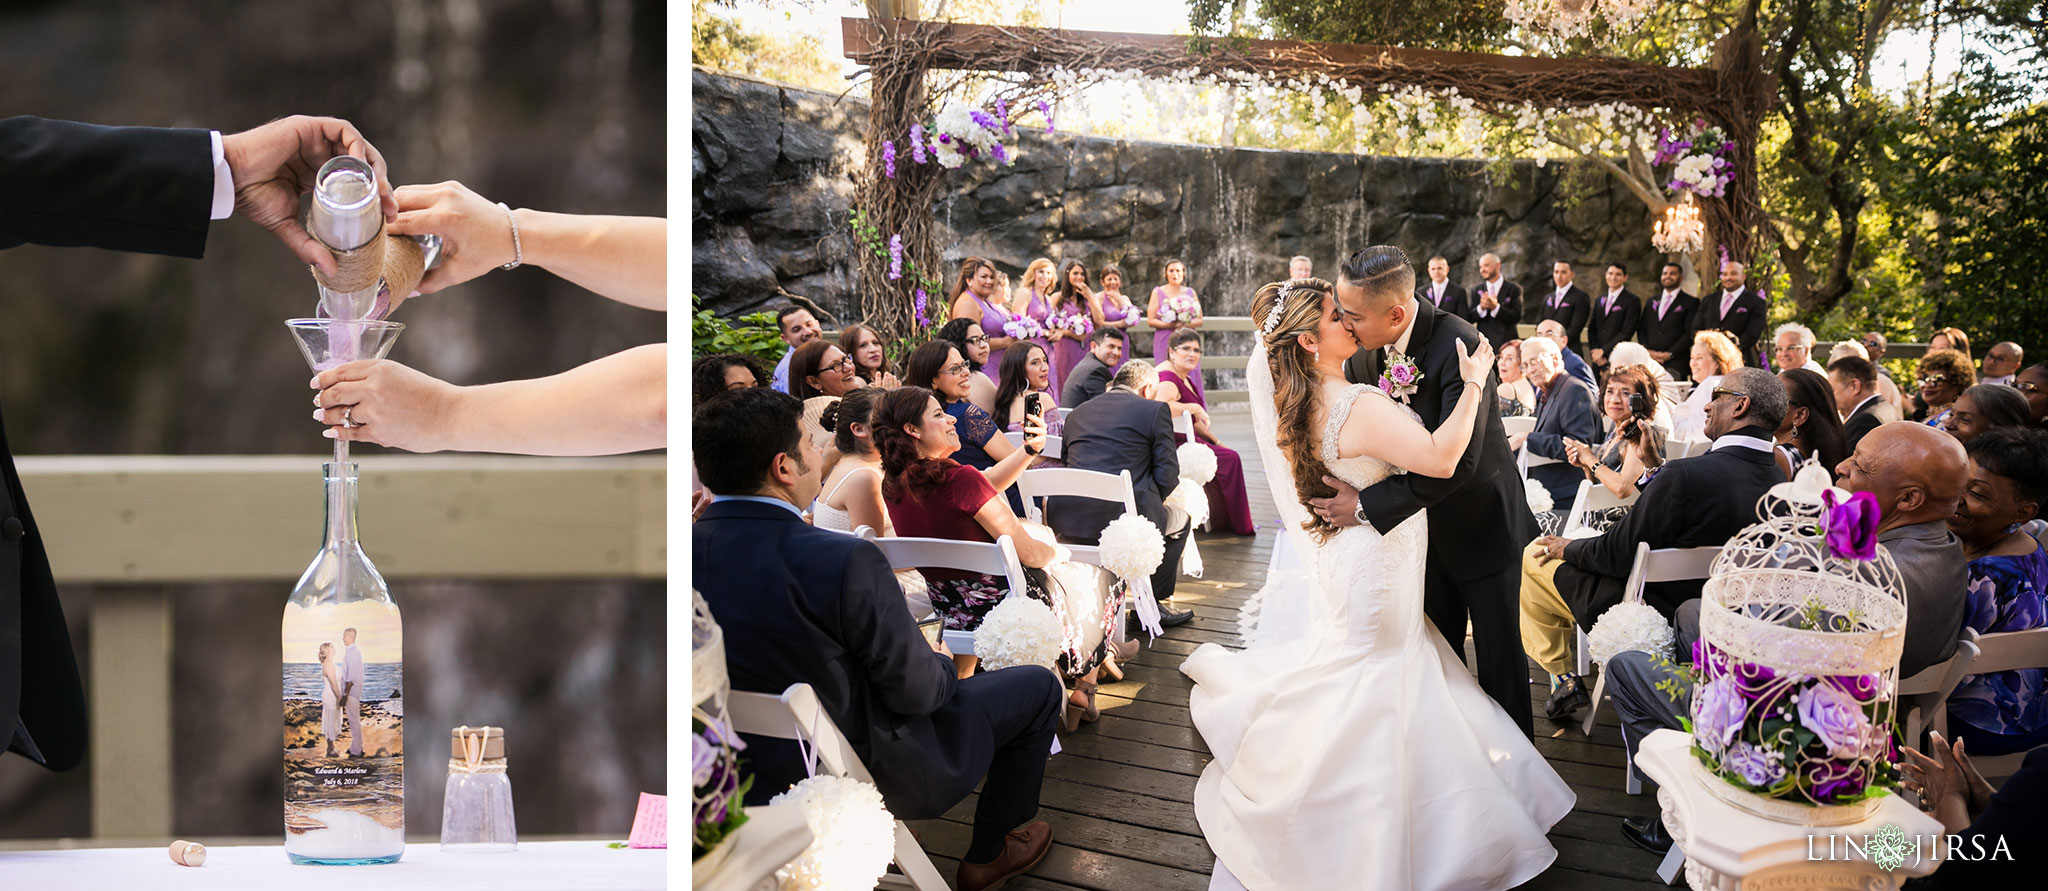 15 calamigos ranch malibu wedding photography